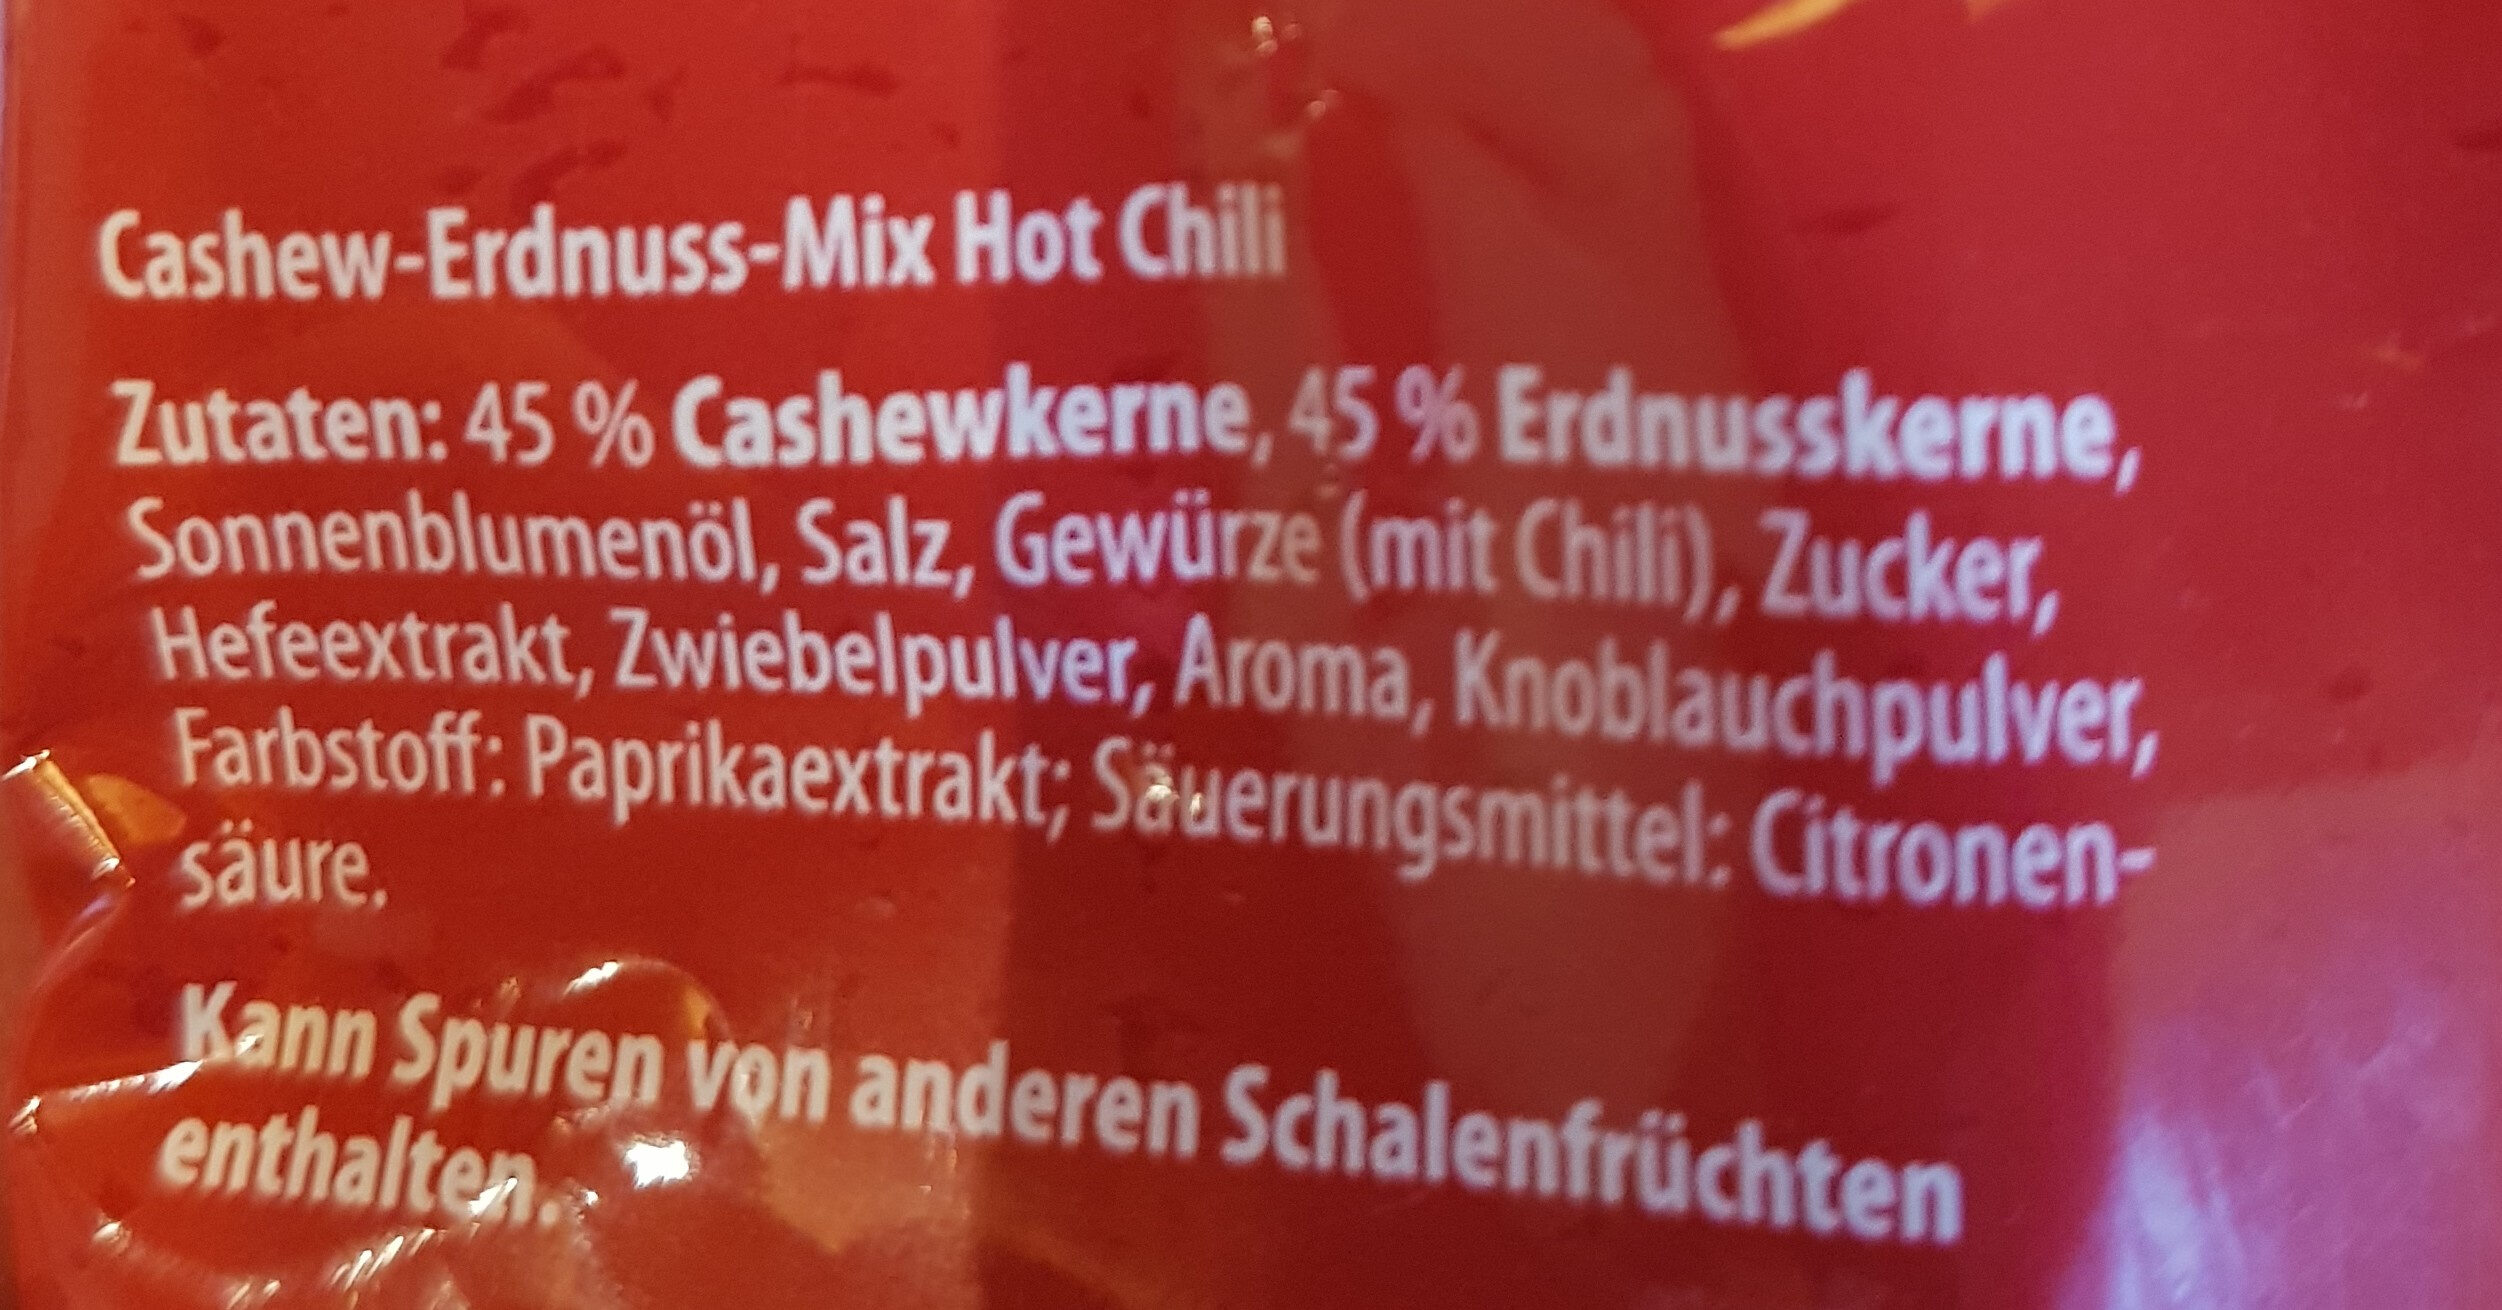 Cashew- Erdnuss- MIX Hot Chili - Ingredients - de